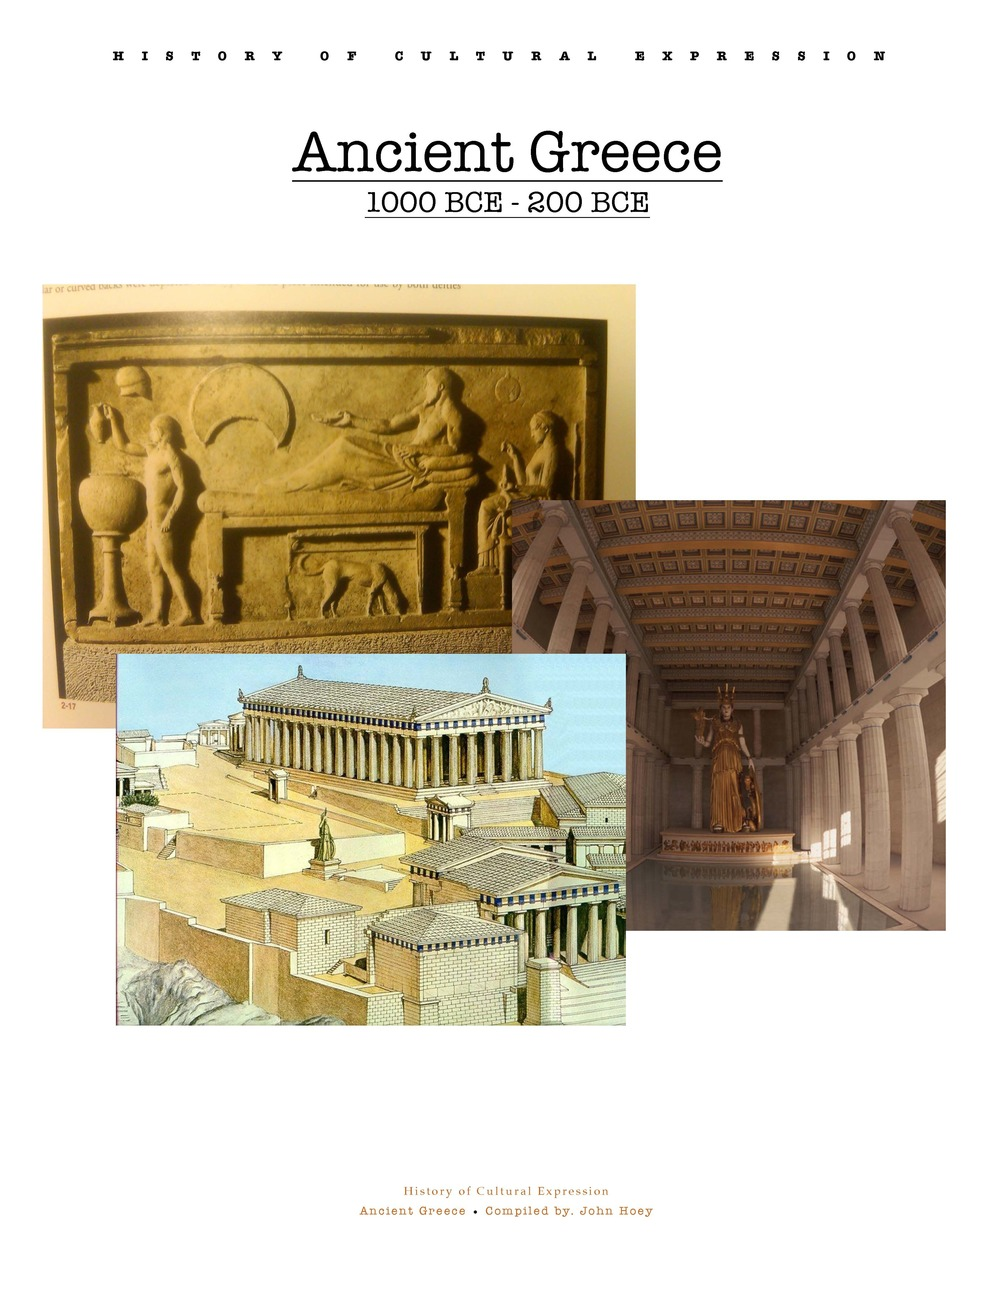 HOCE- Ancient Greece Notes_Page_001.jpg